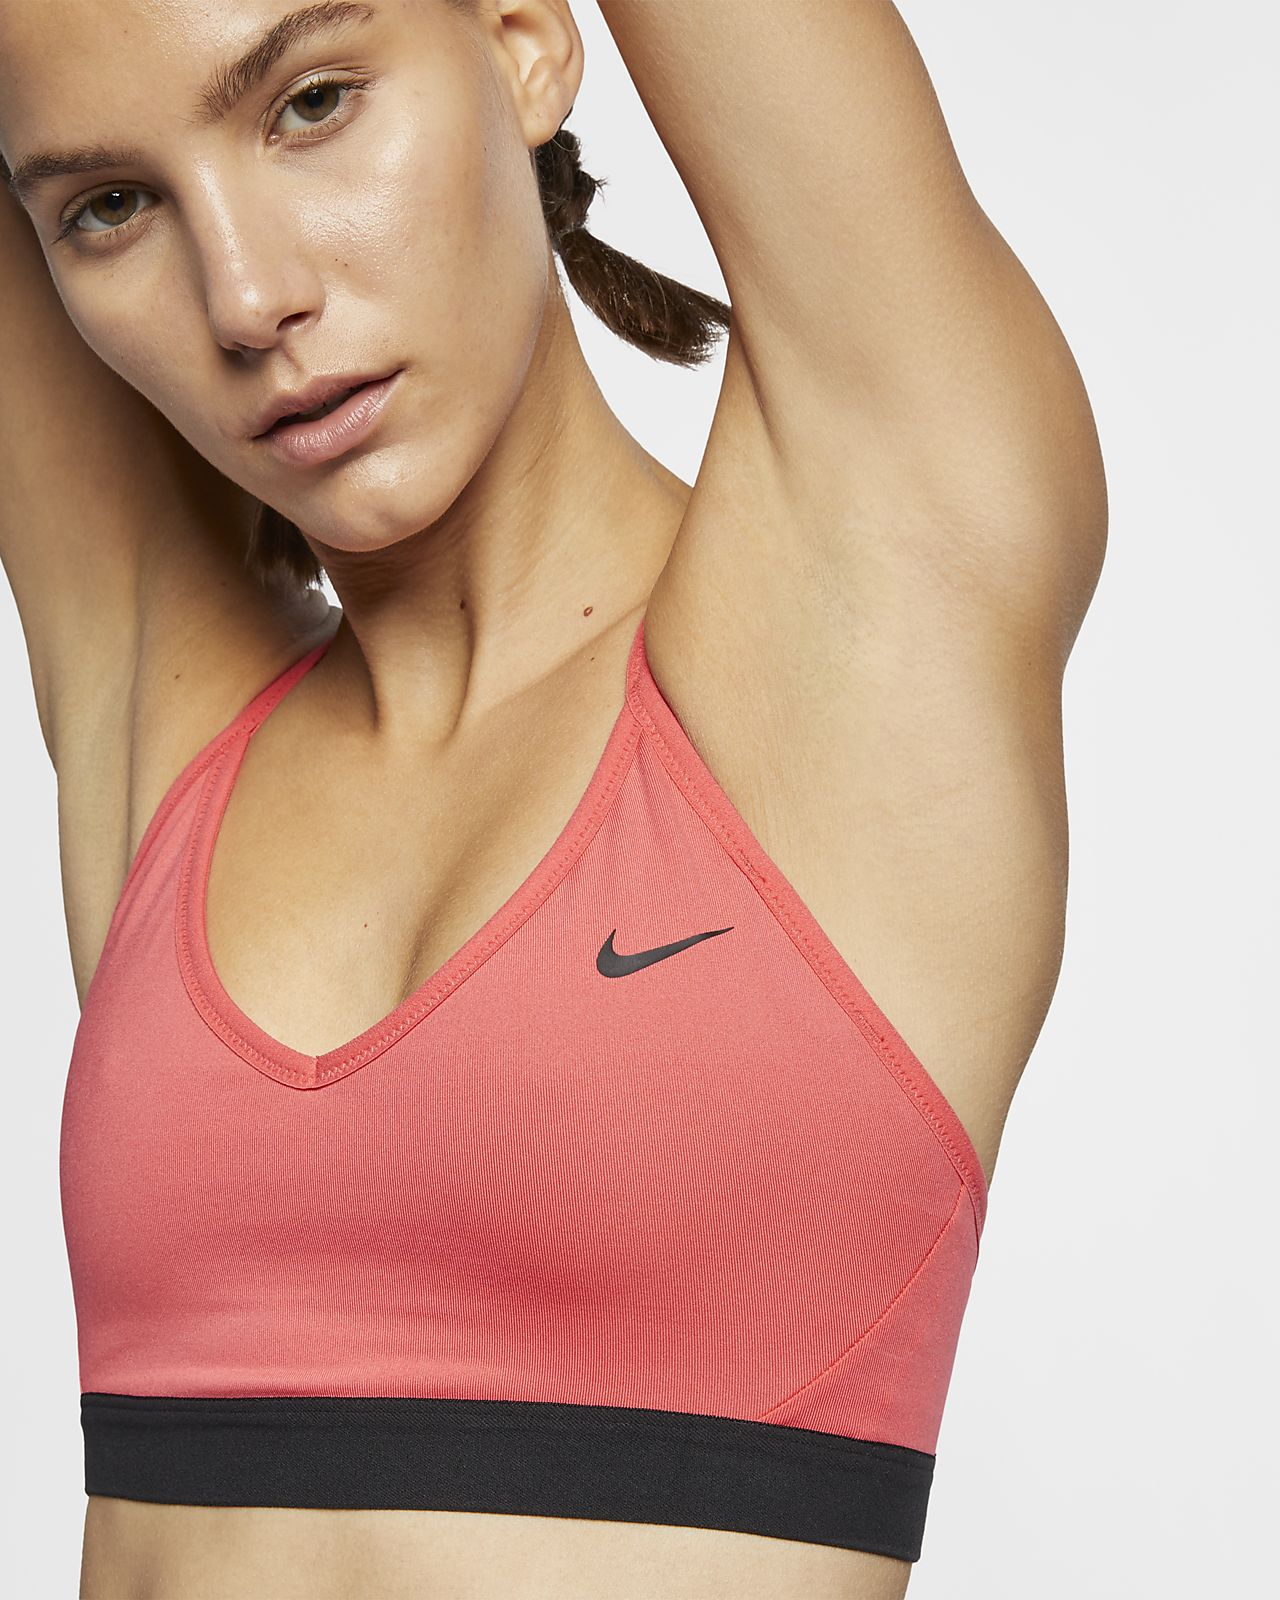 6975acb7cb553 Nike Indy Women s Light-Support Sports Bra. Nike.com